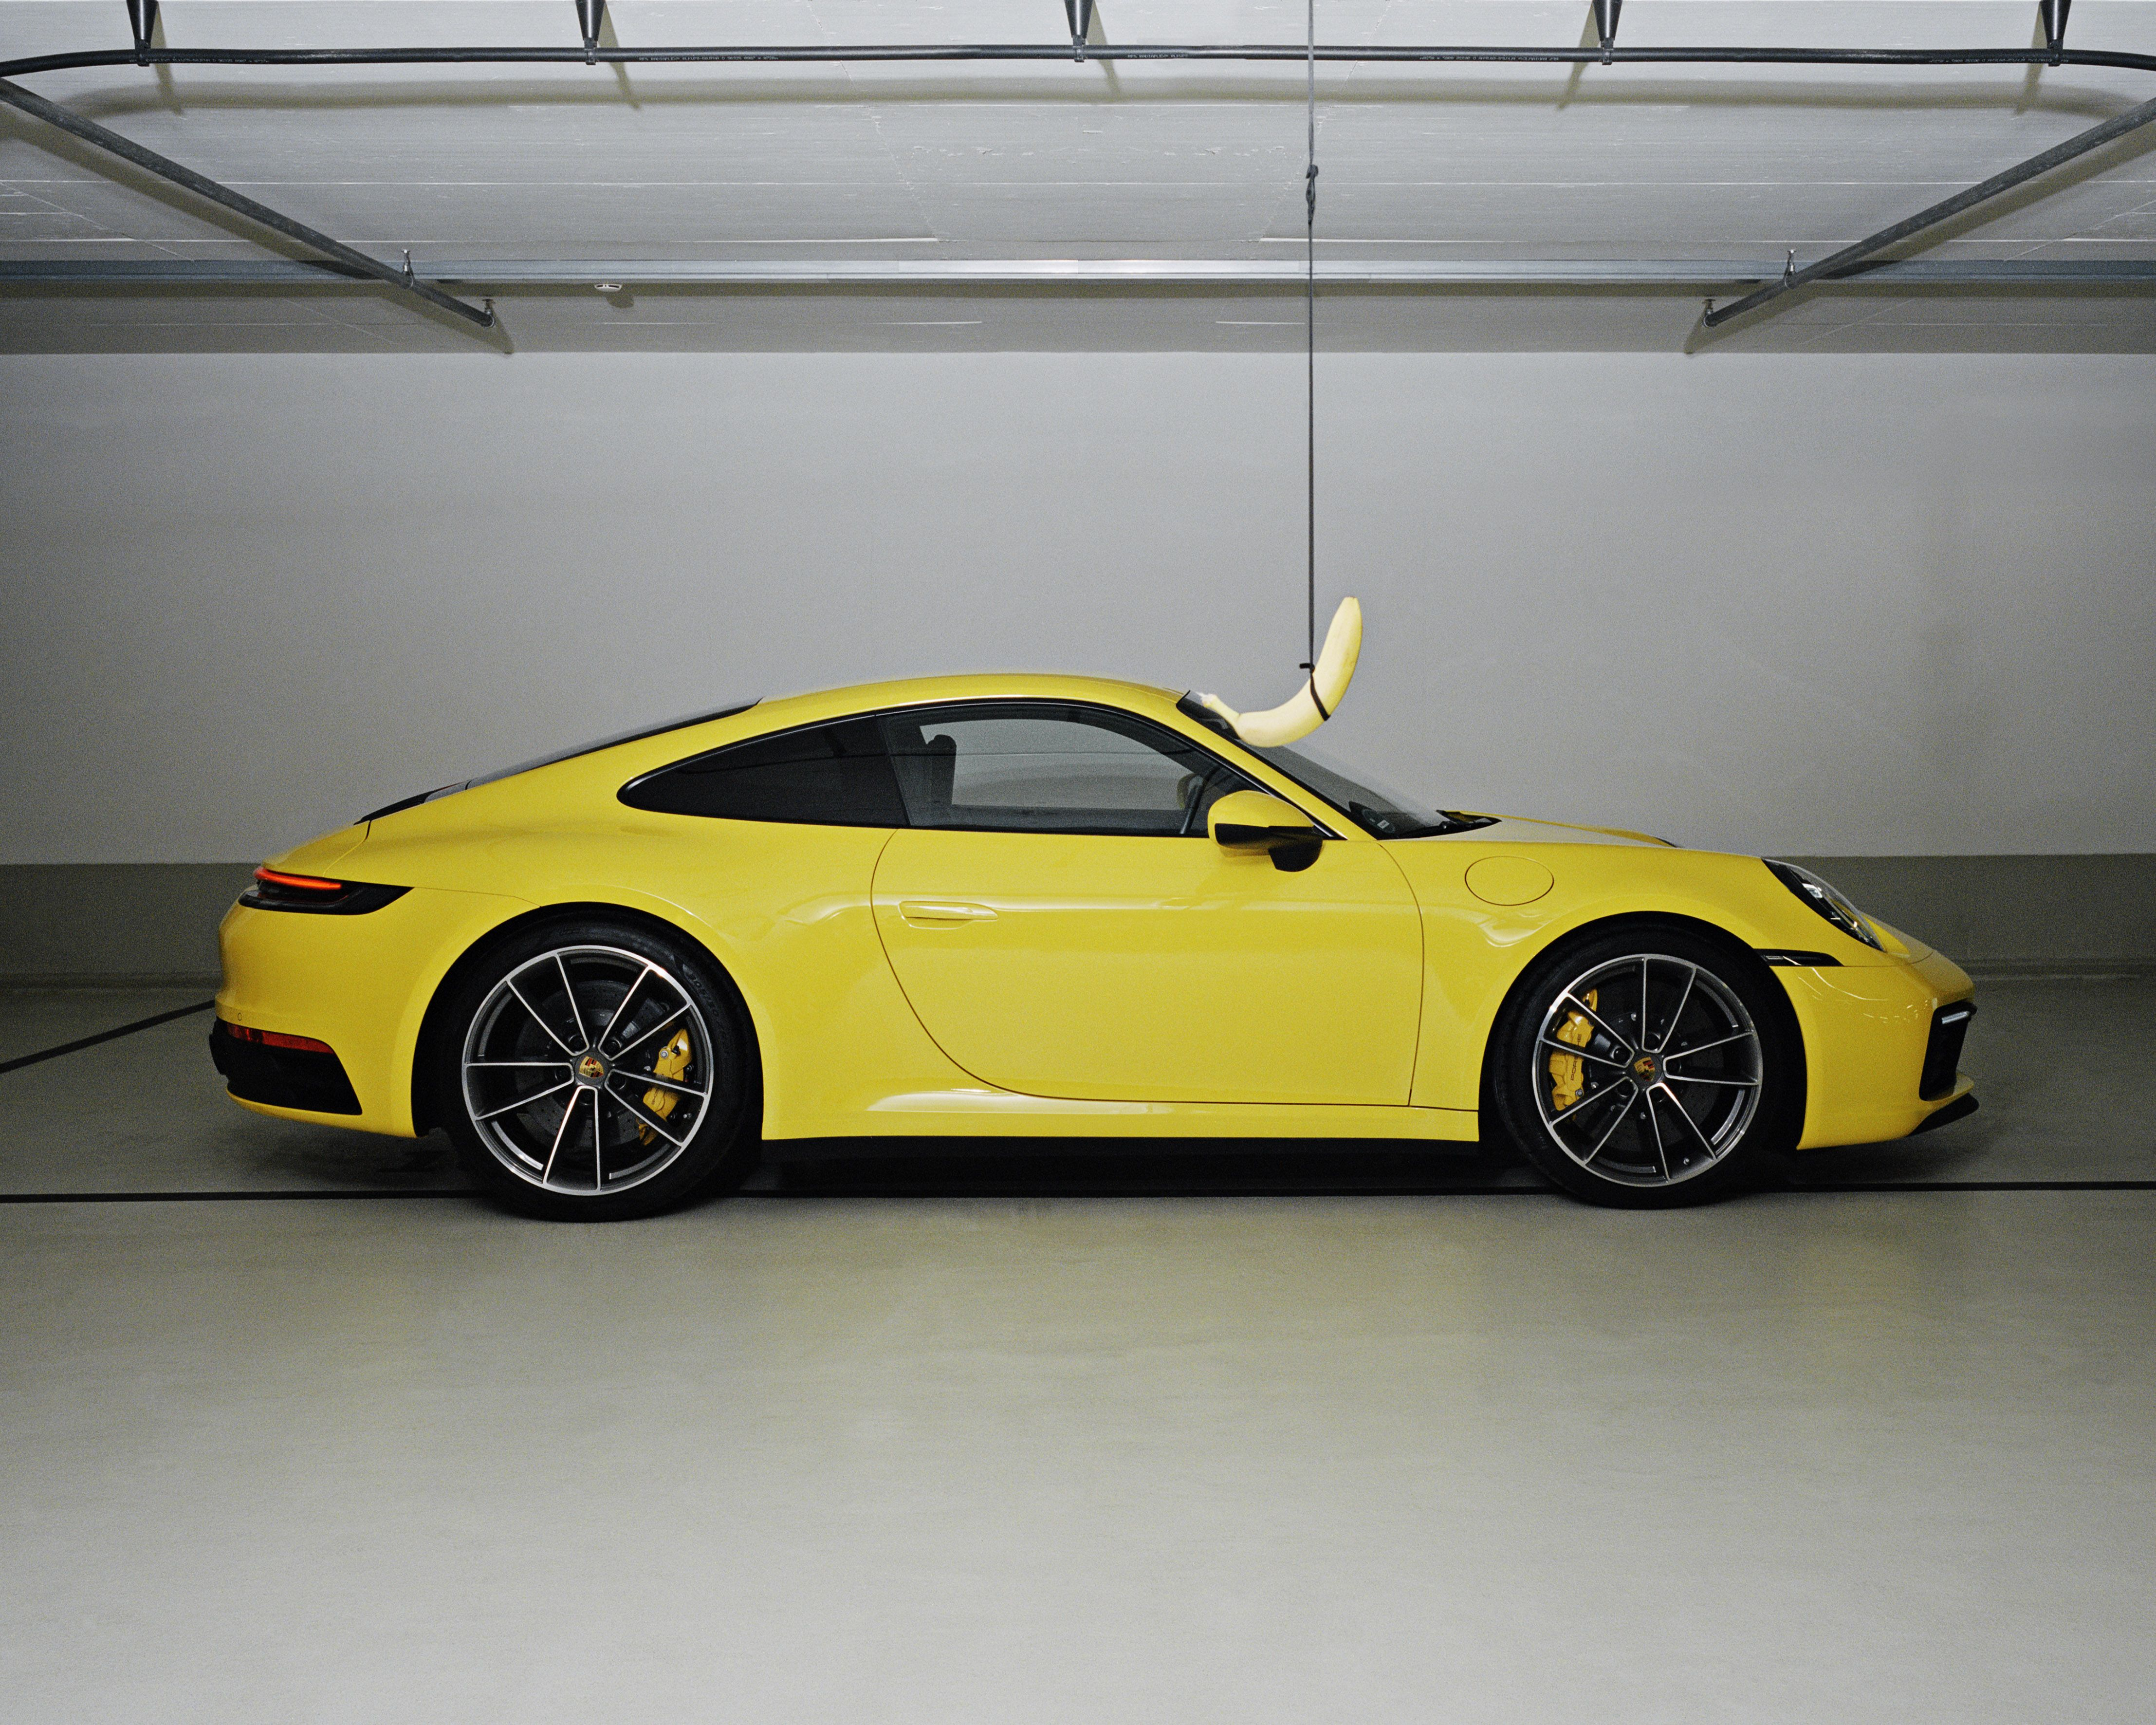 Porsche 911 How The World S Most Famous Sports Car Keeps Getting